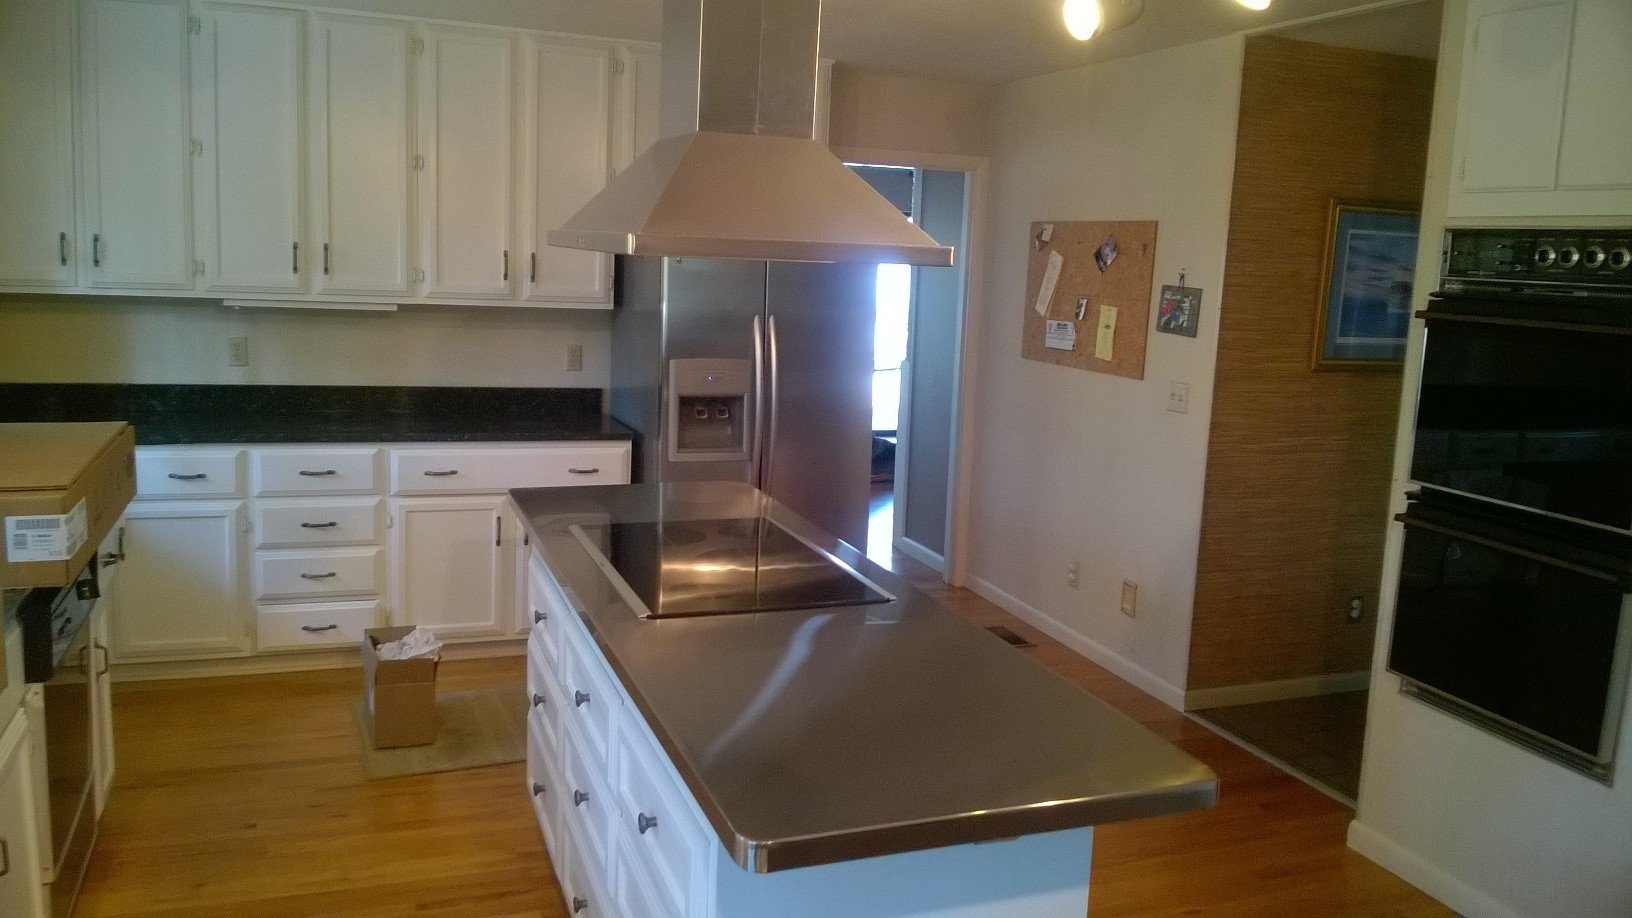 Residential Kitchen Stainless Steel Island Top with CookTop